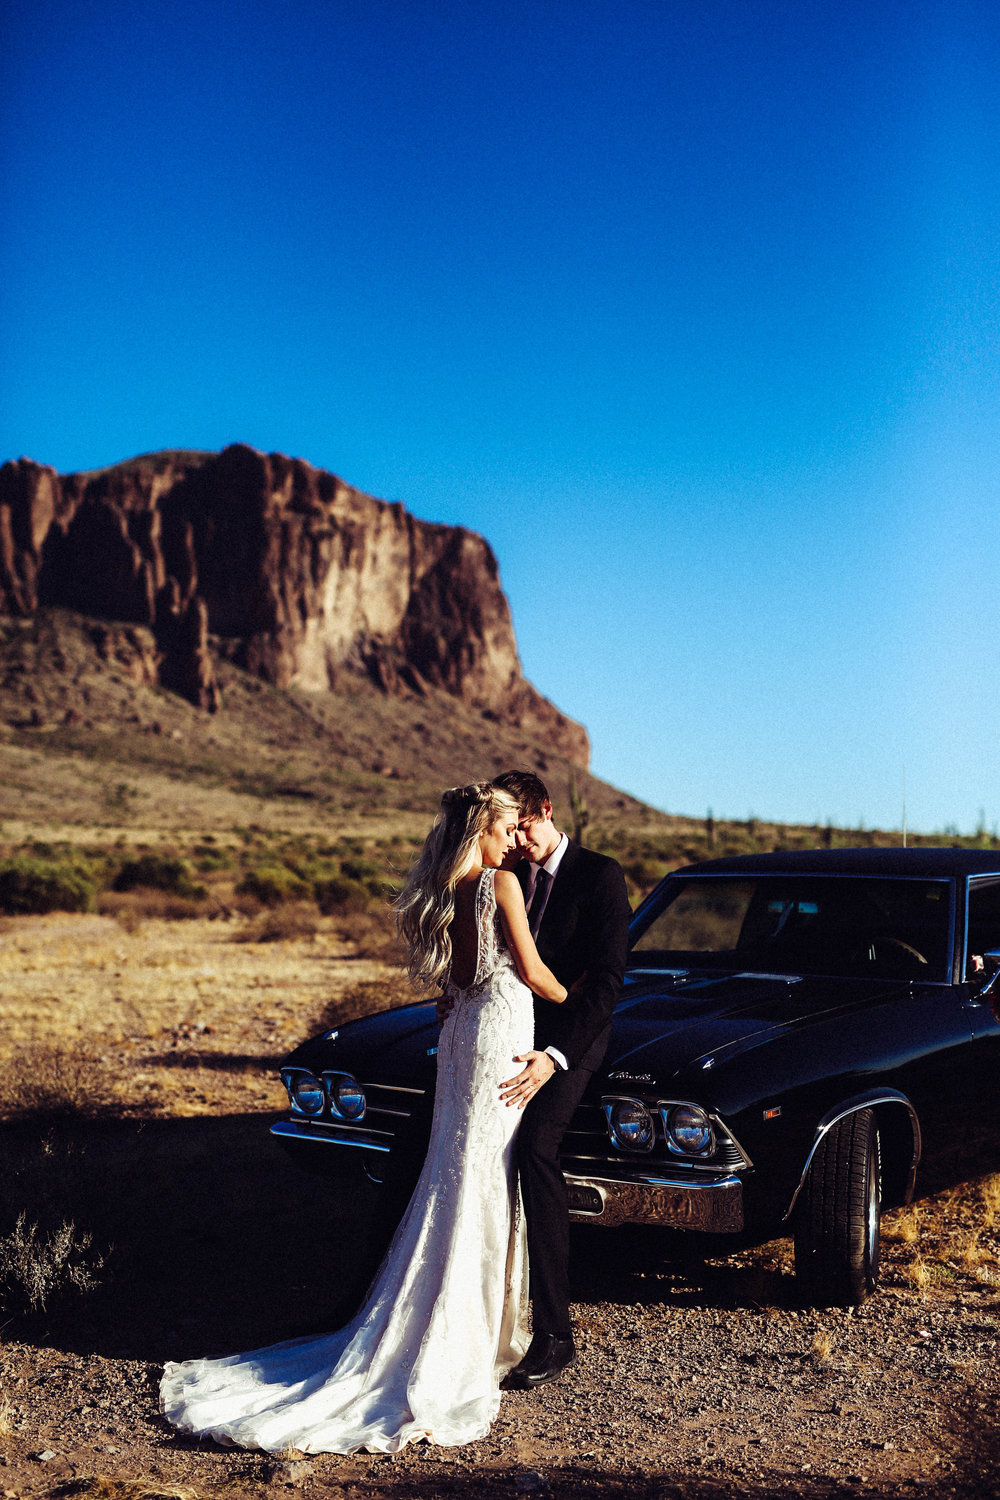 Thelma & Louise Inspired Wedding - Classic Car with Floral in the Desert